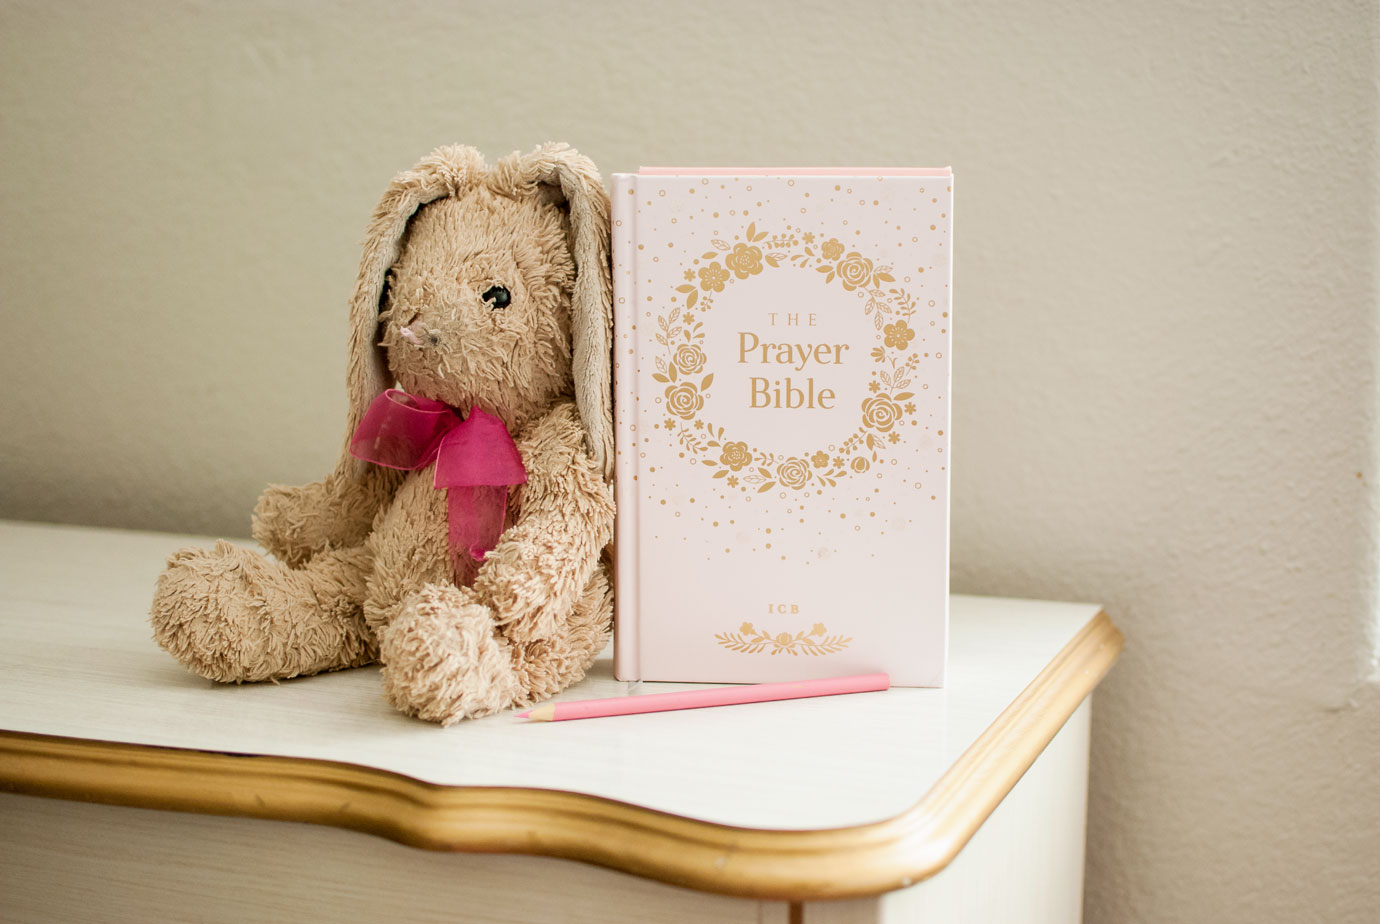 Icb Prayer Bible For Children Review And Giveaway The Dotted Nest